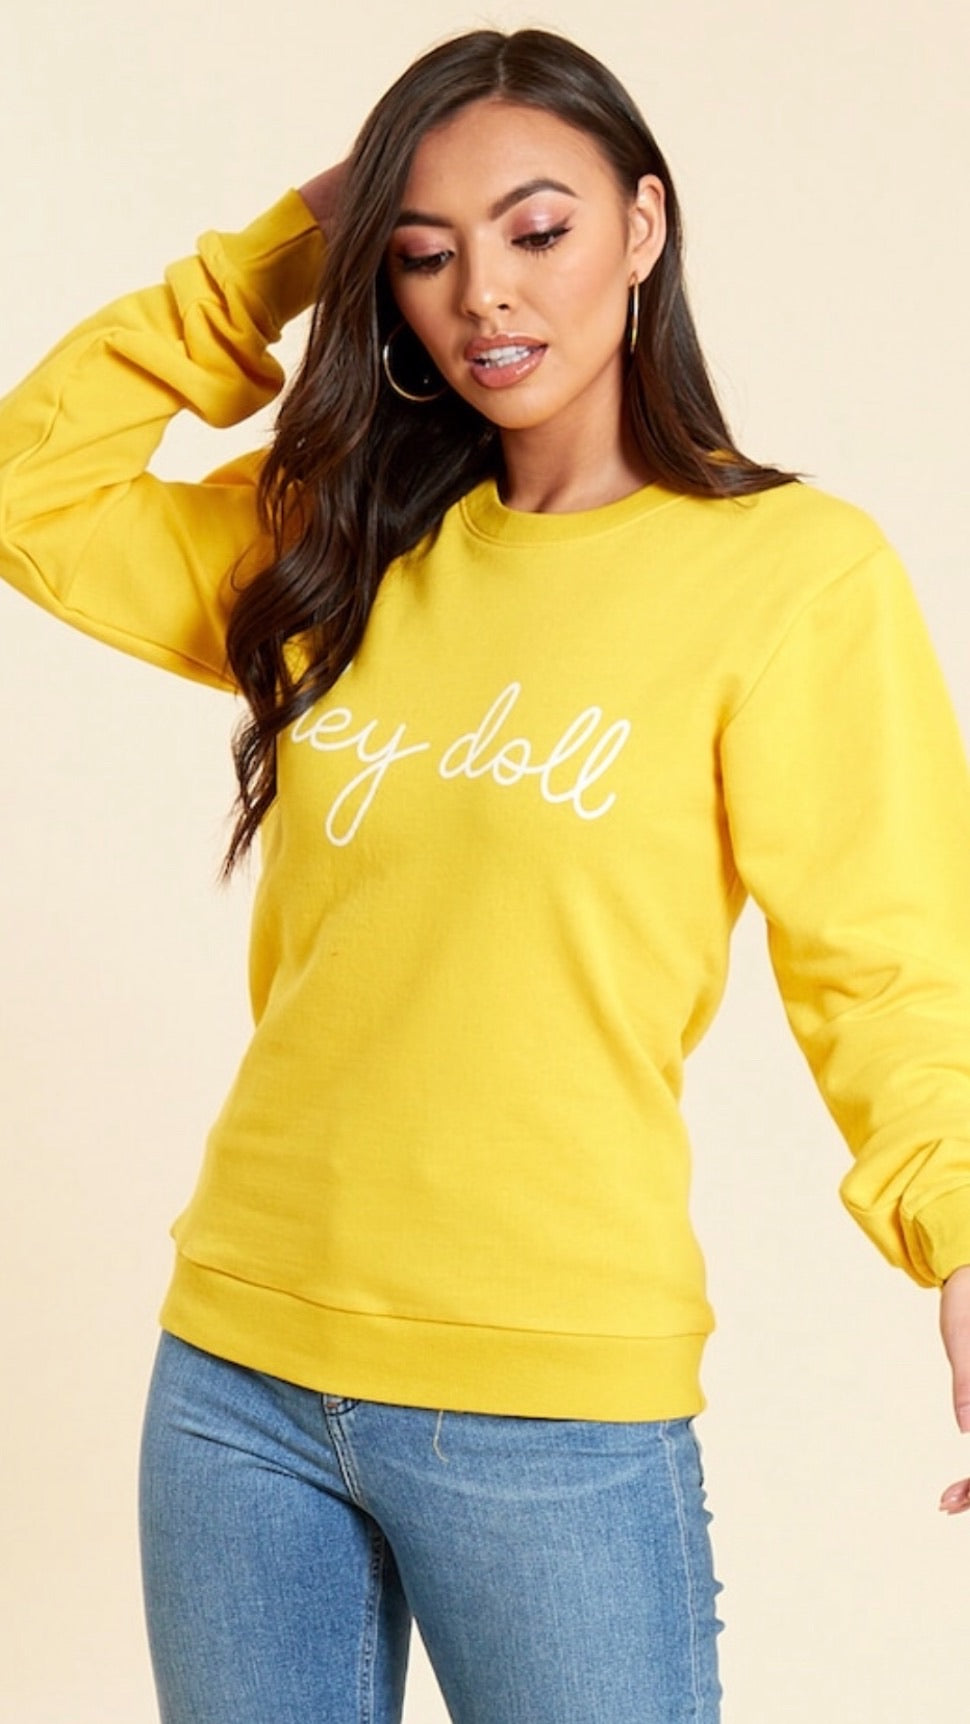 Hey Doll Sweatshirt - Yellow